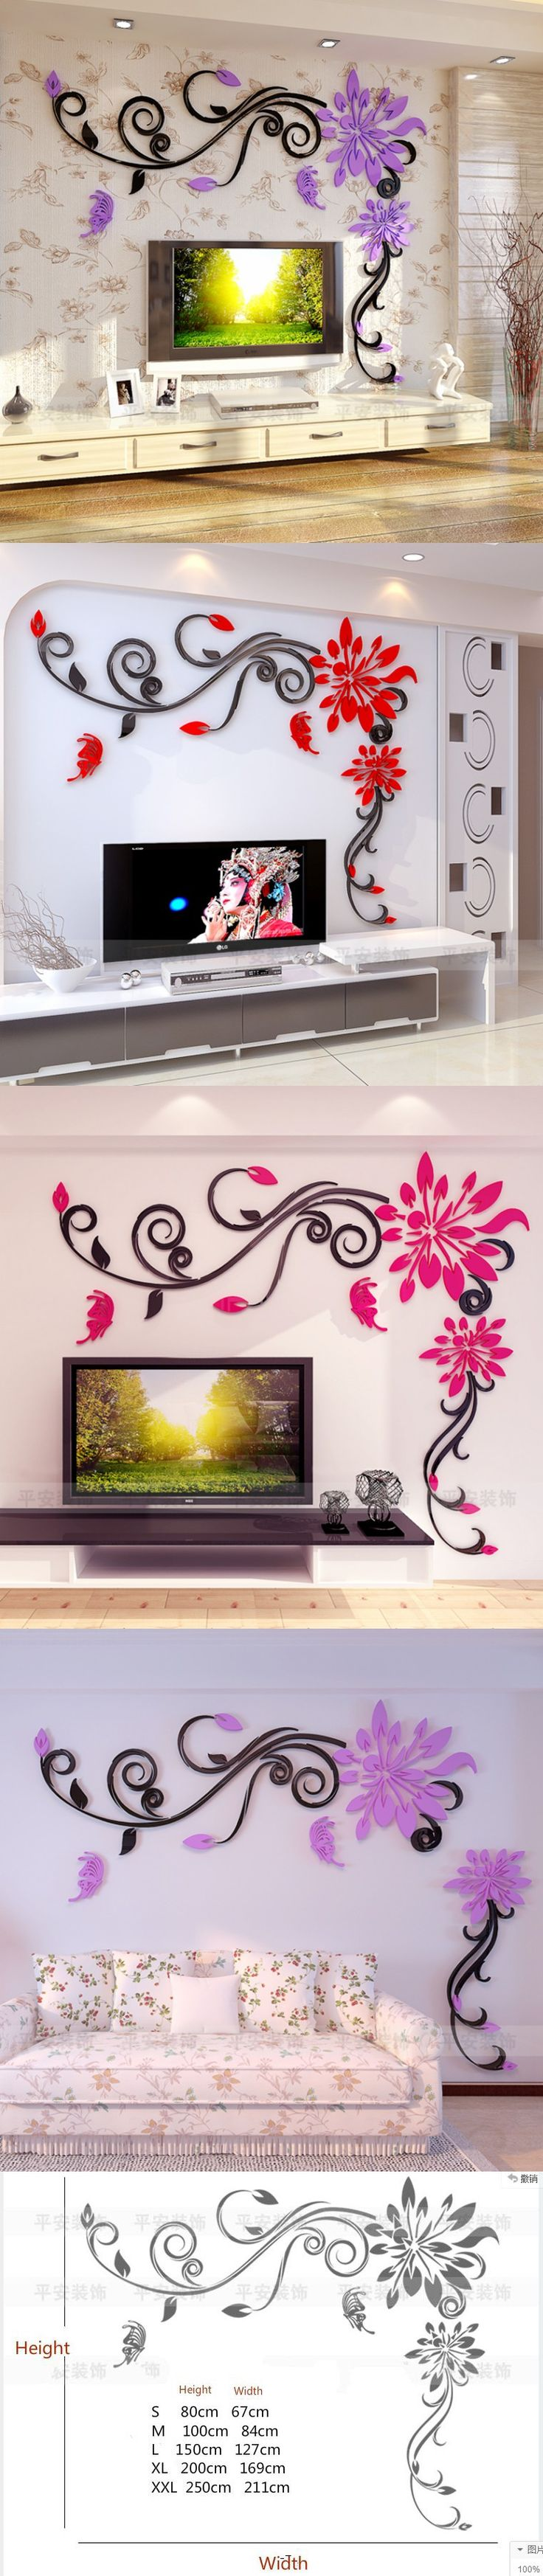 best 25 scandinavian wall stickers ideas on pinterest wall acrylic crystal flower vine 3d wall stickers living room wall decoration removable sticker creative home decor tree butterfly